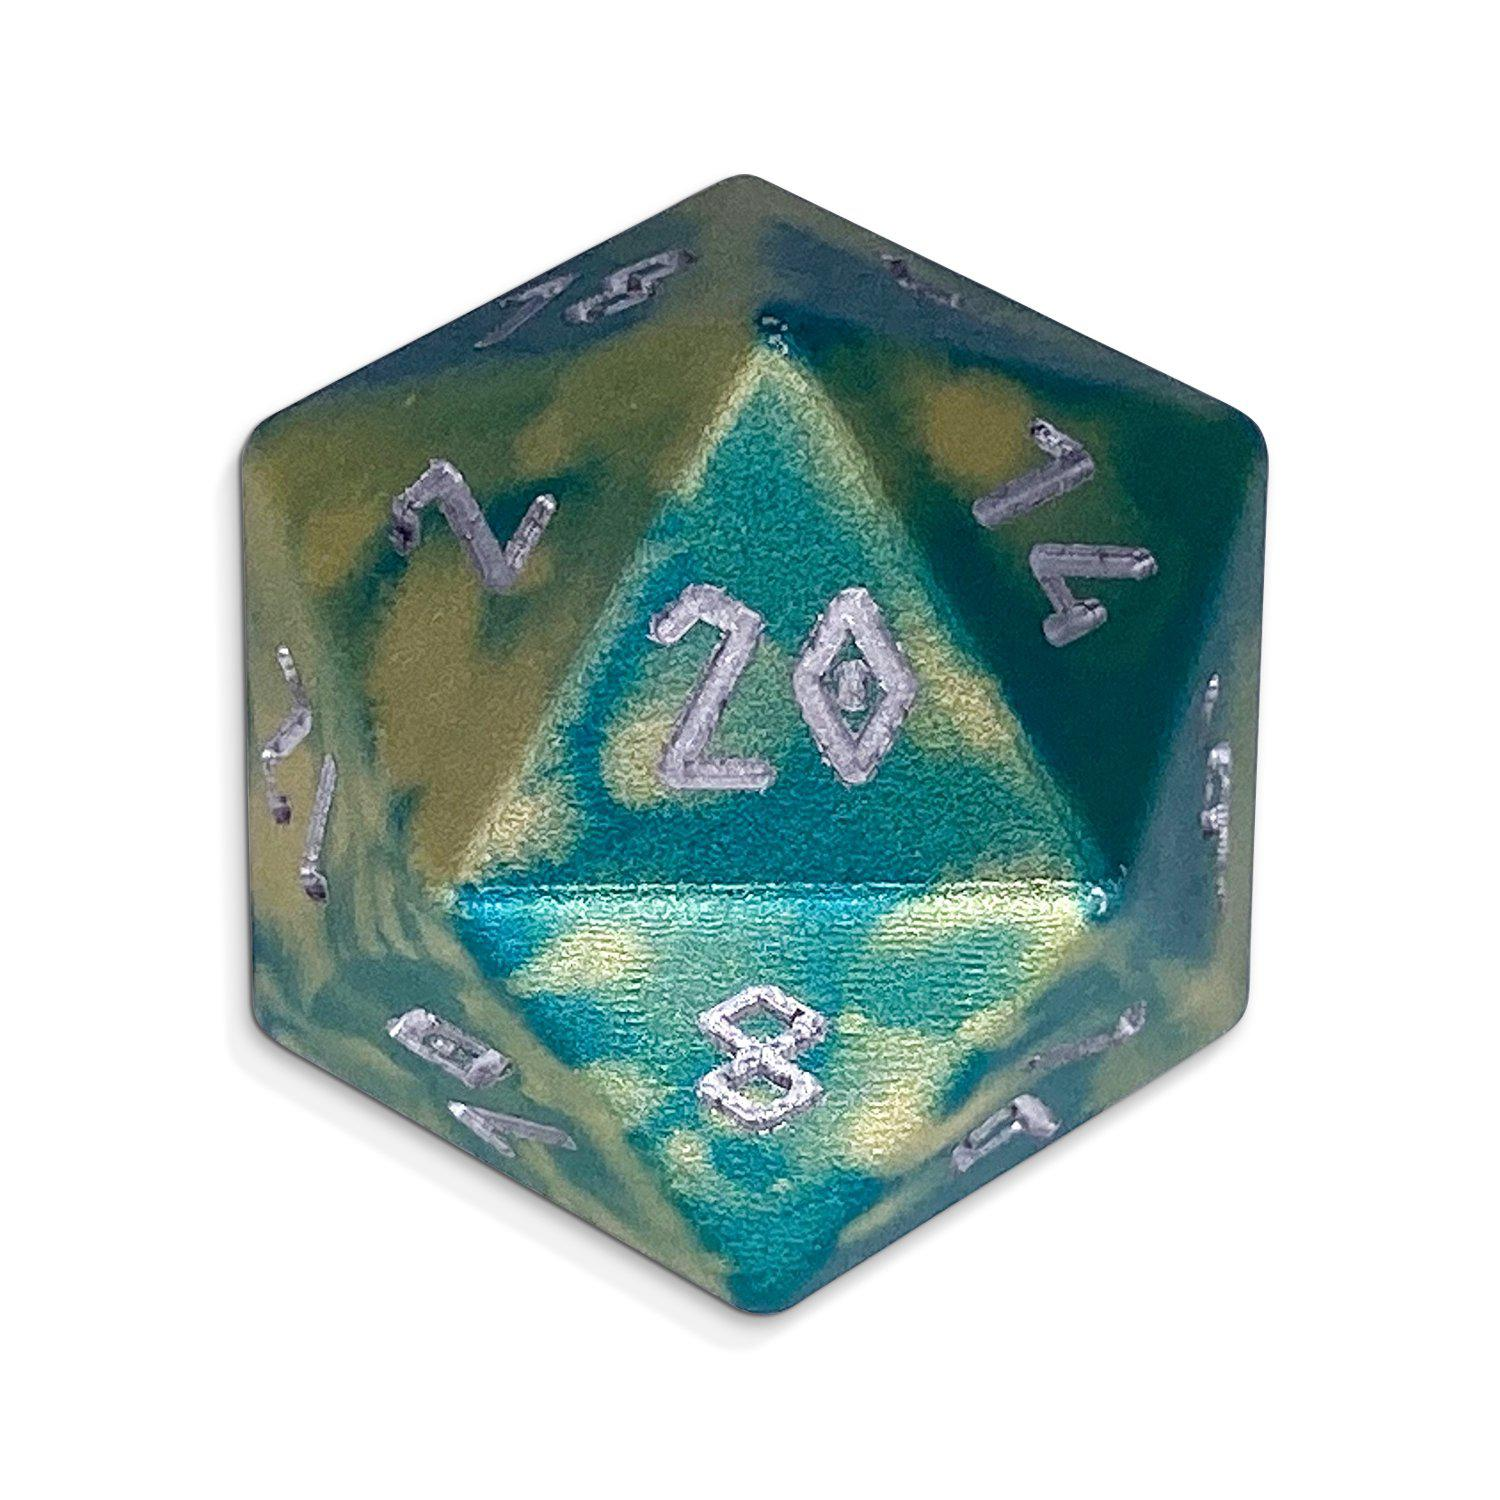 Single Wondrous Dice® D20 in Nautical Demise by Norse Foundry® 6063 Aircraft Grade Aluminum